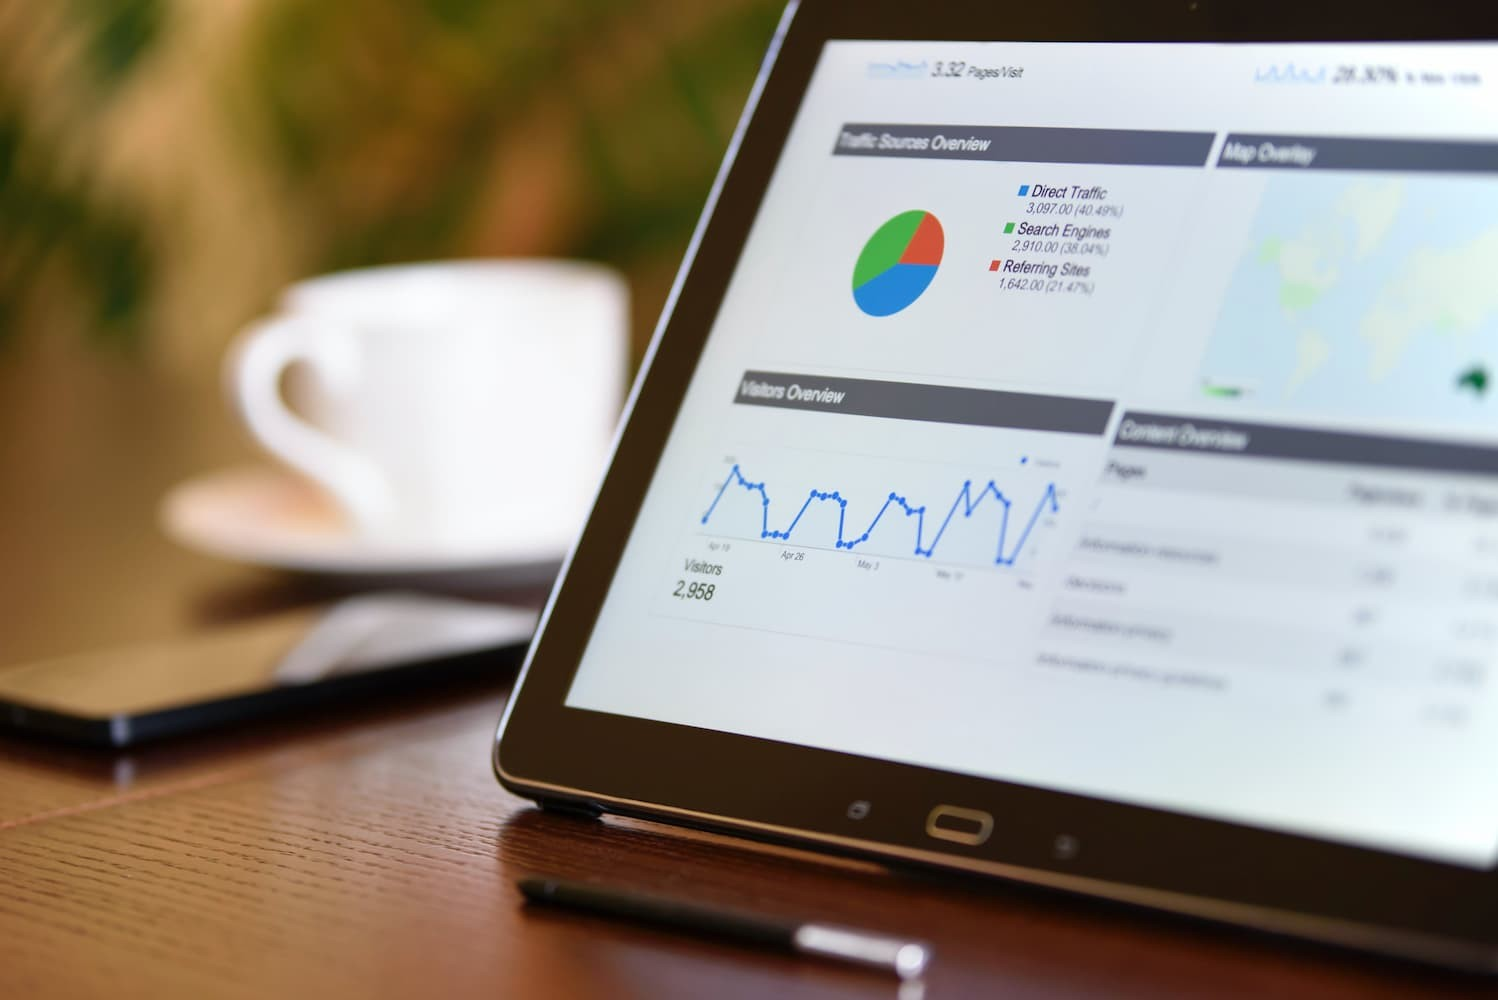 DPP Part 23: Why marketing analytics are key to the success of your business